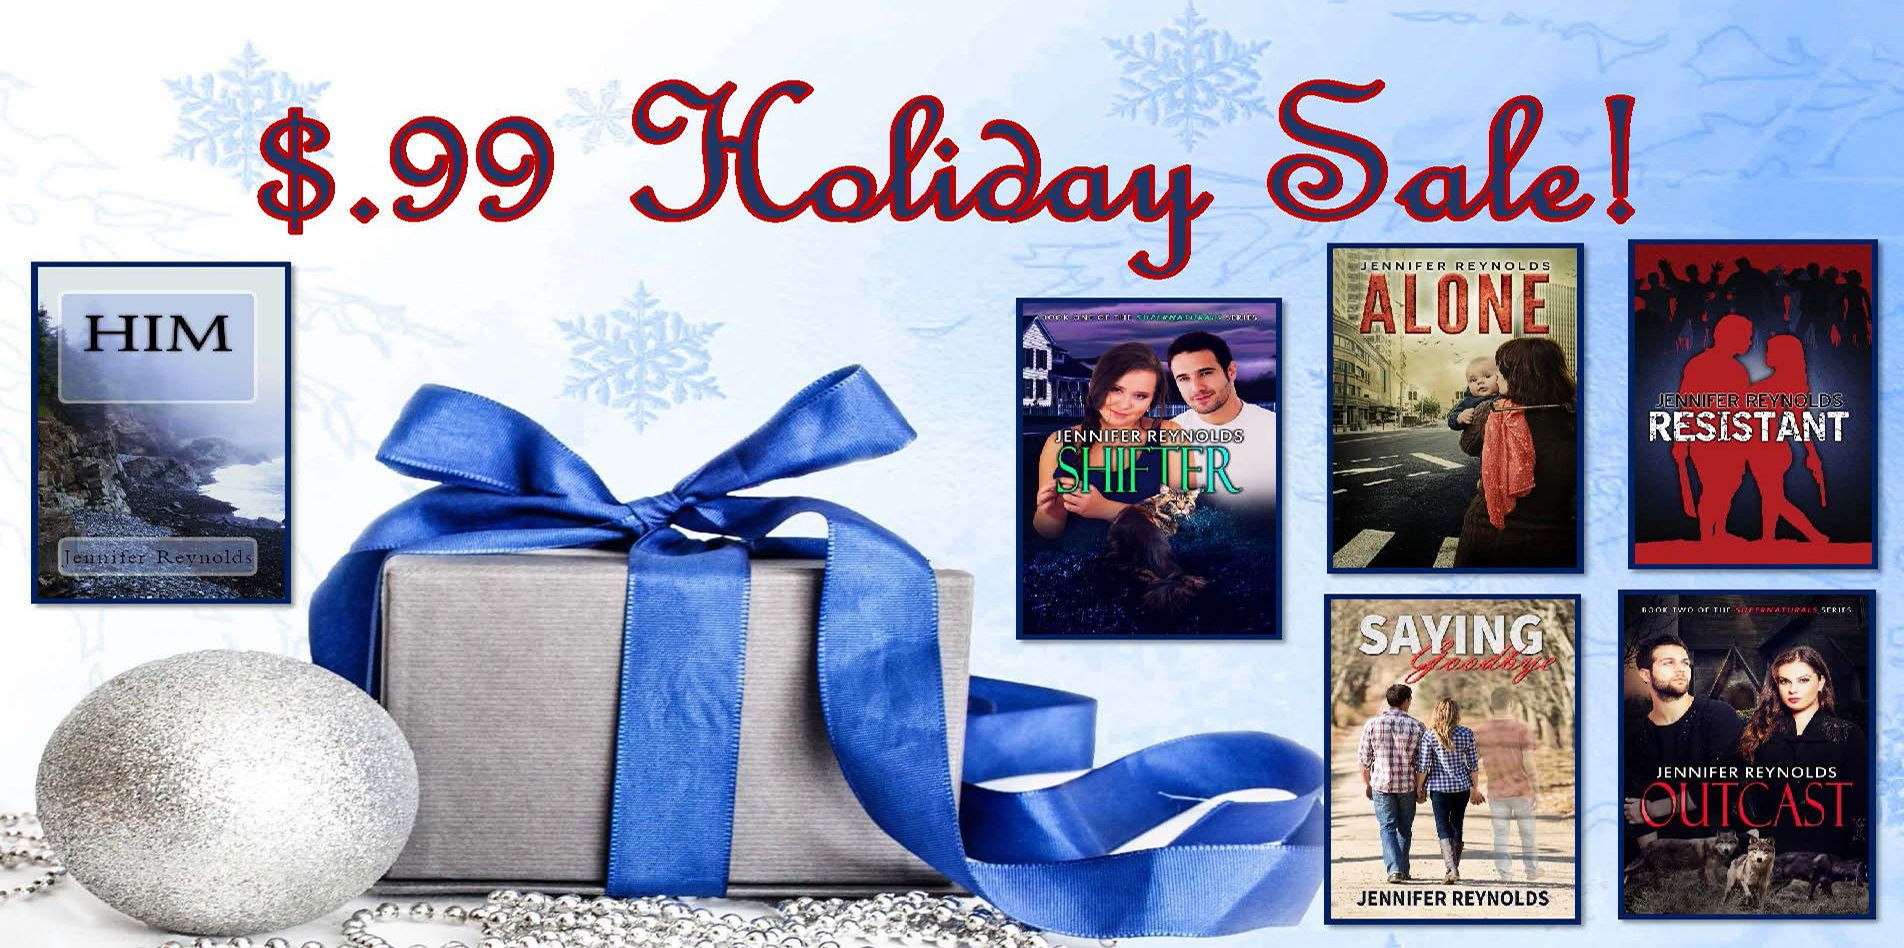 $.99 Holiday Sale  All my eBooks are $.99 between now and January 1, 2017.   Shifter, Supernaturals Book 1—A paranormal romance http://www.amazon.com/dp/B00M8HLU2U https://www.smashwords.com/books/view/462262 http://www.barnesandnoble.com/w/books/1120024902?ean=2940149636907 https://itunes.apple.com/us/book/shifter/id904335011?mt=11 https://store.kobobooks.com/en-US/ebook/shifter-14 https://www.overdrive.com/media/1971202/shifter	  Outcast, Supernaturals Book 2—A Paranormal romance…